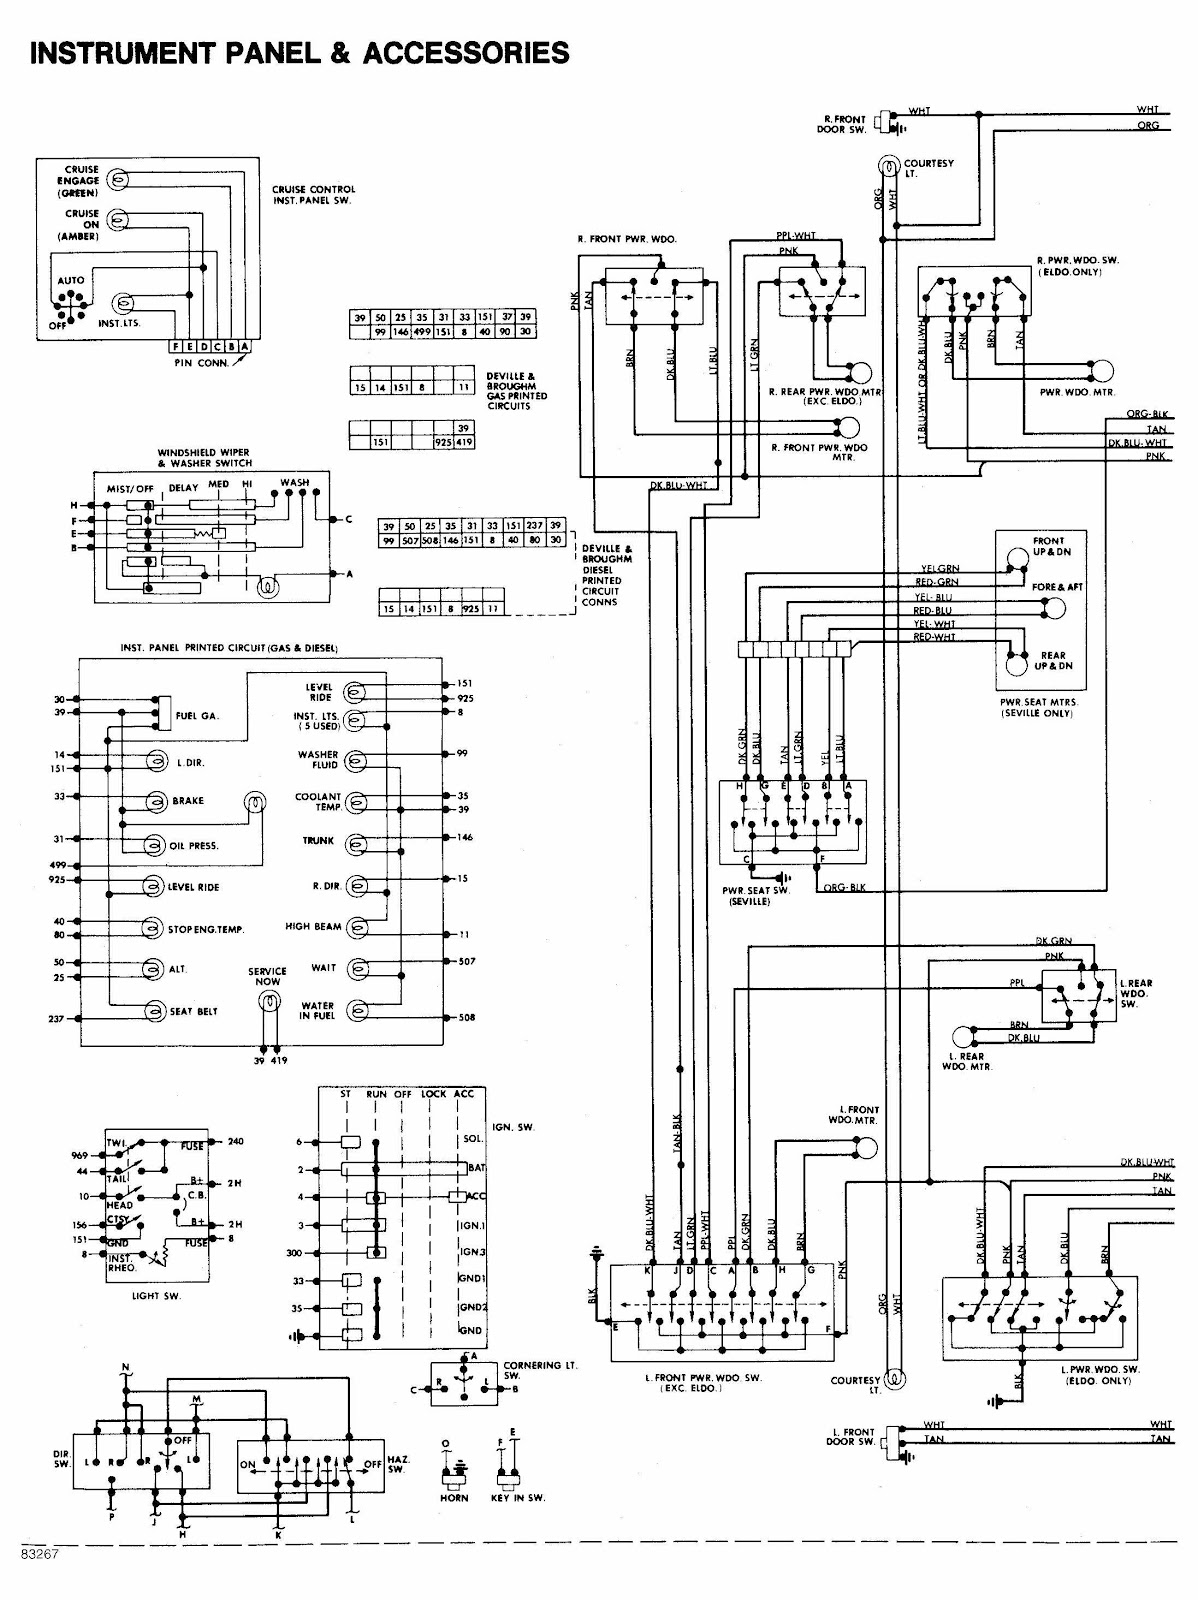 2000 chevy 1500 4 8 instrument panel wiring diagram With fuse box diagrams further chevy silverado center instrument panel fuse